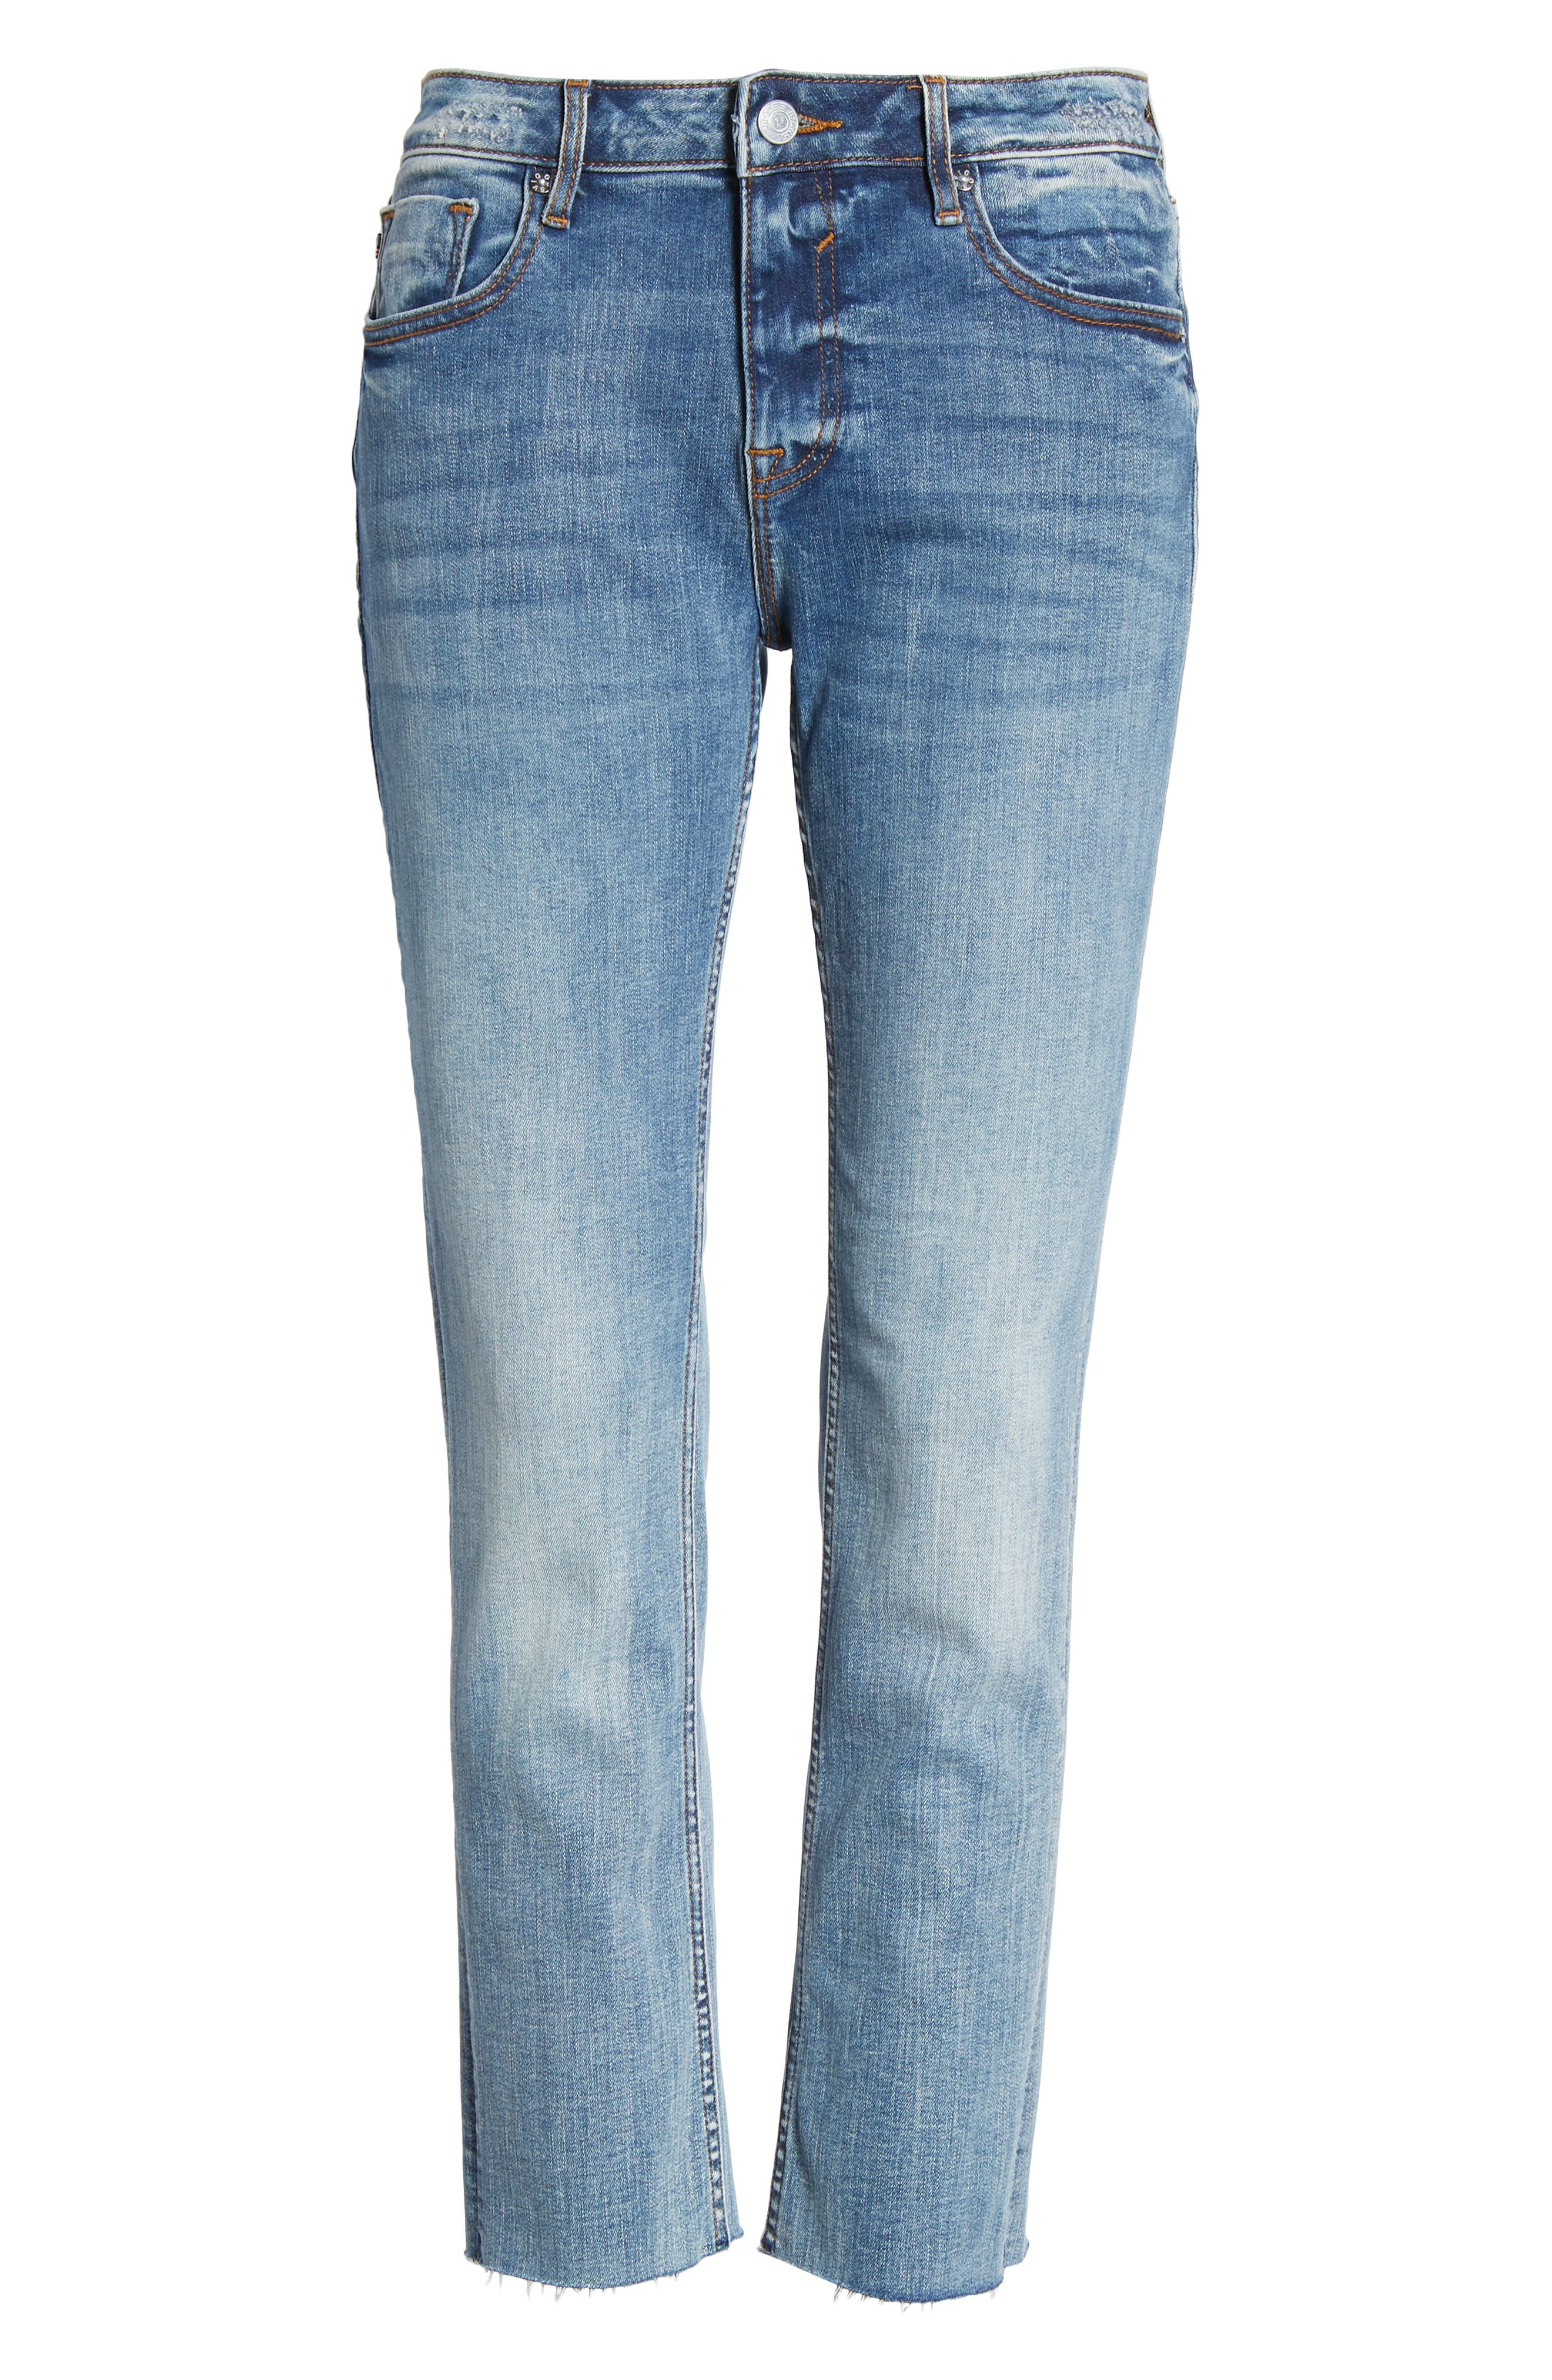 Jagger Crop Straight Leg Jeans,                             Alternate thumbnail 7, color,                             Med Wash